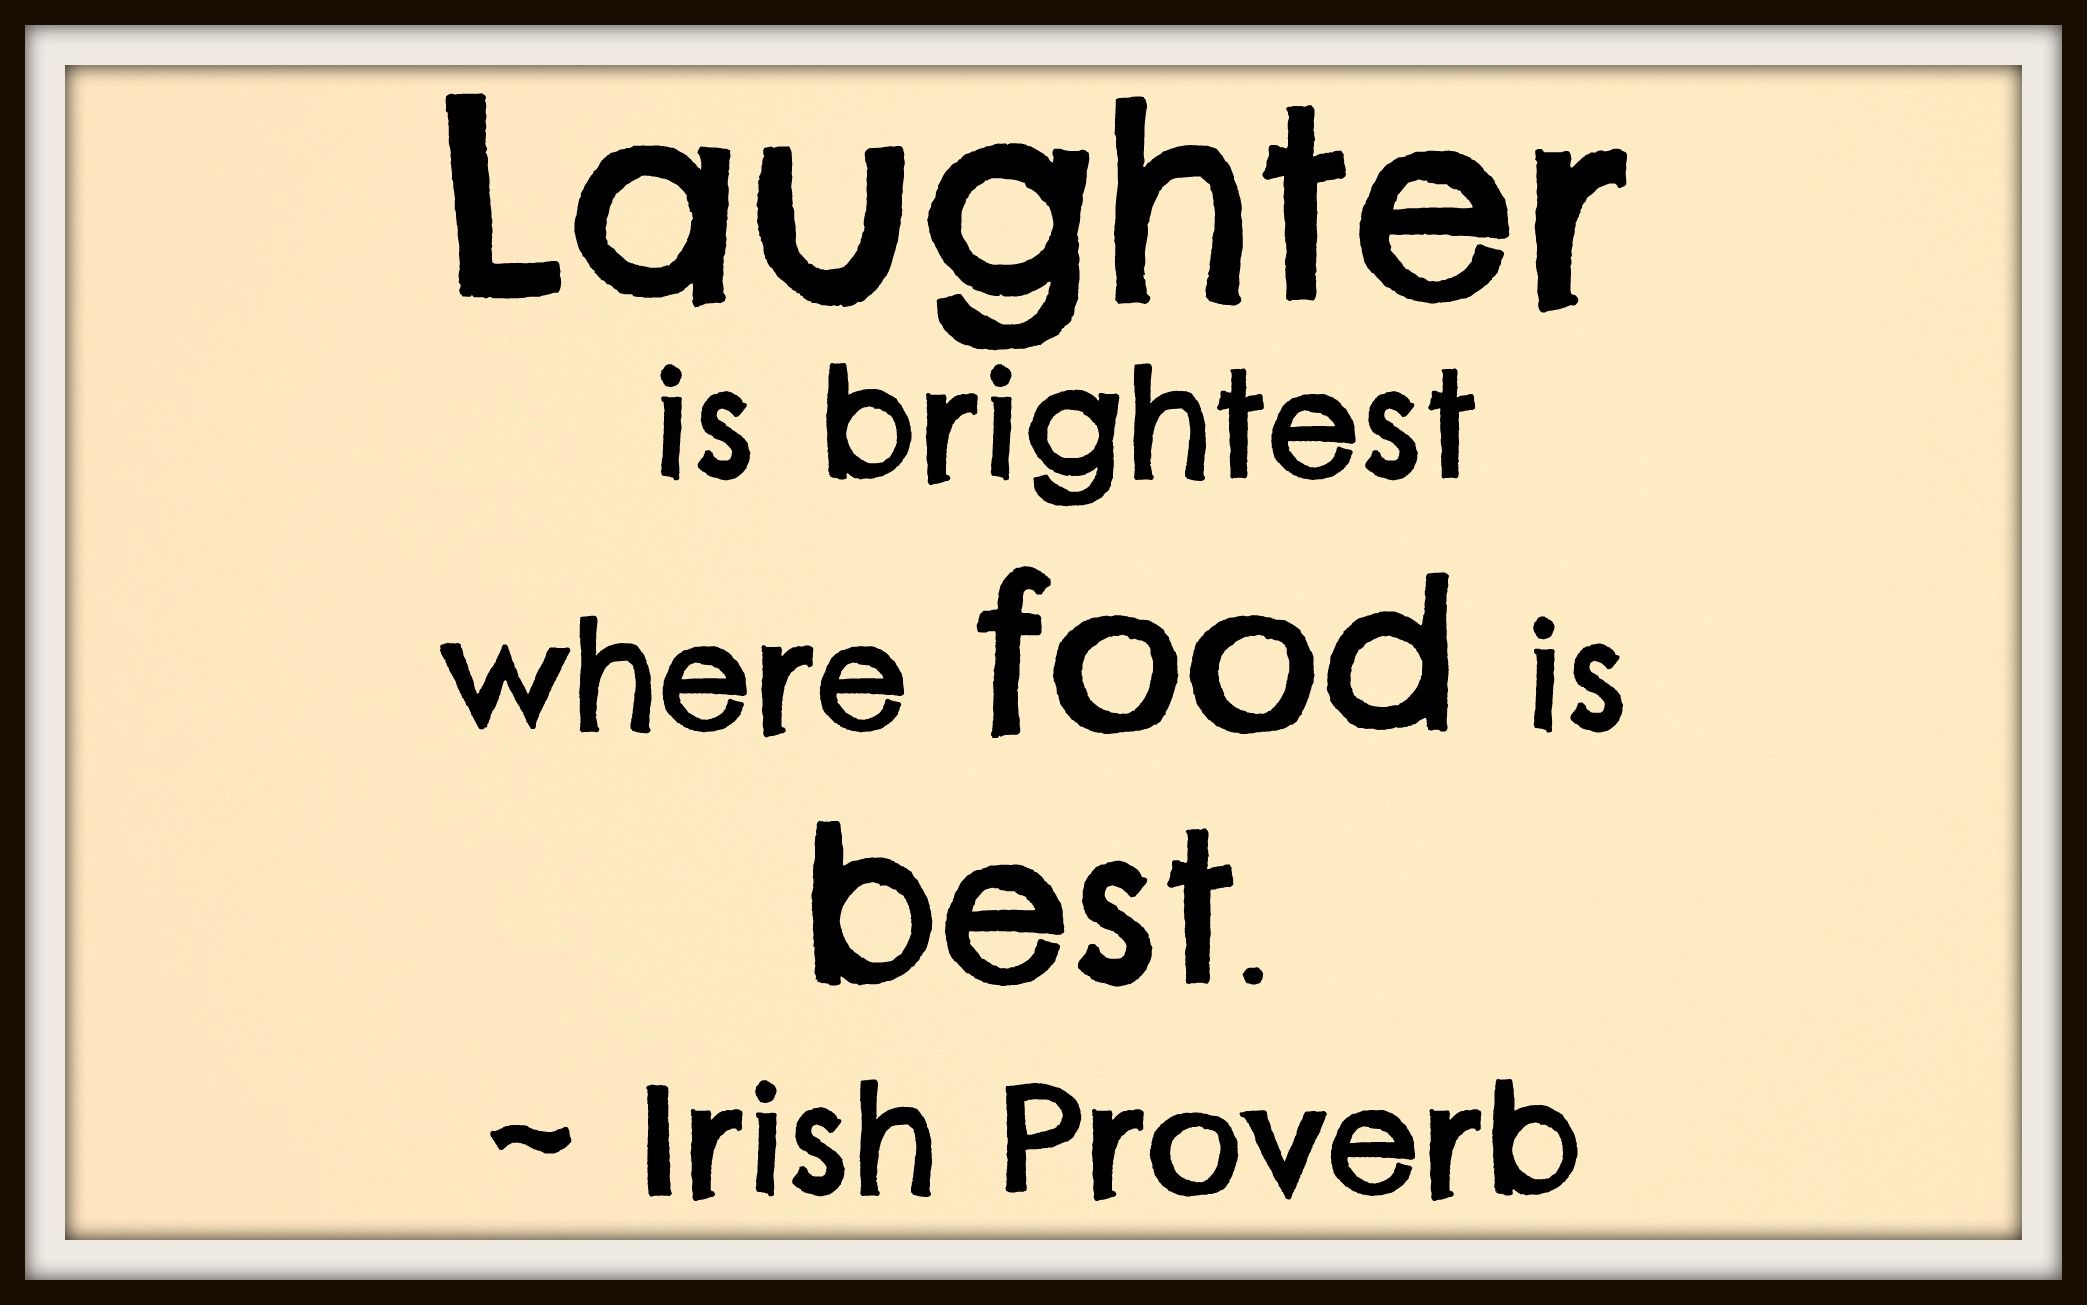 Little Foodie S Choice Restaurant Quotes Food Quotes Cooking Quotes